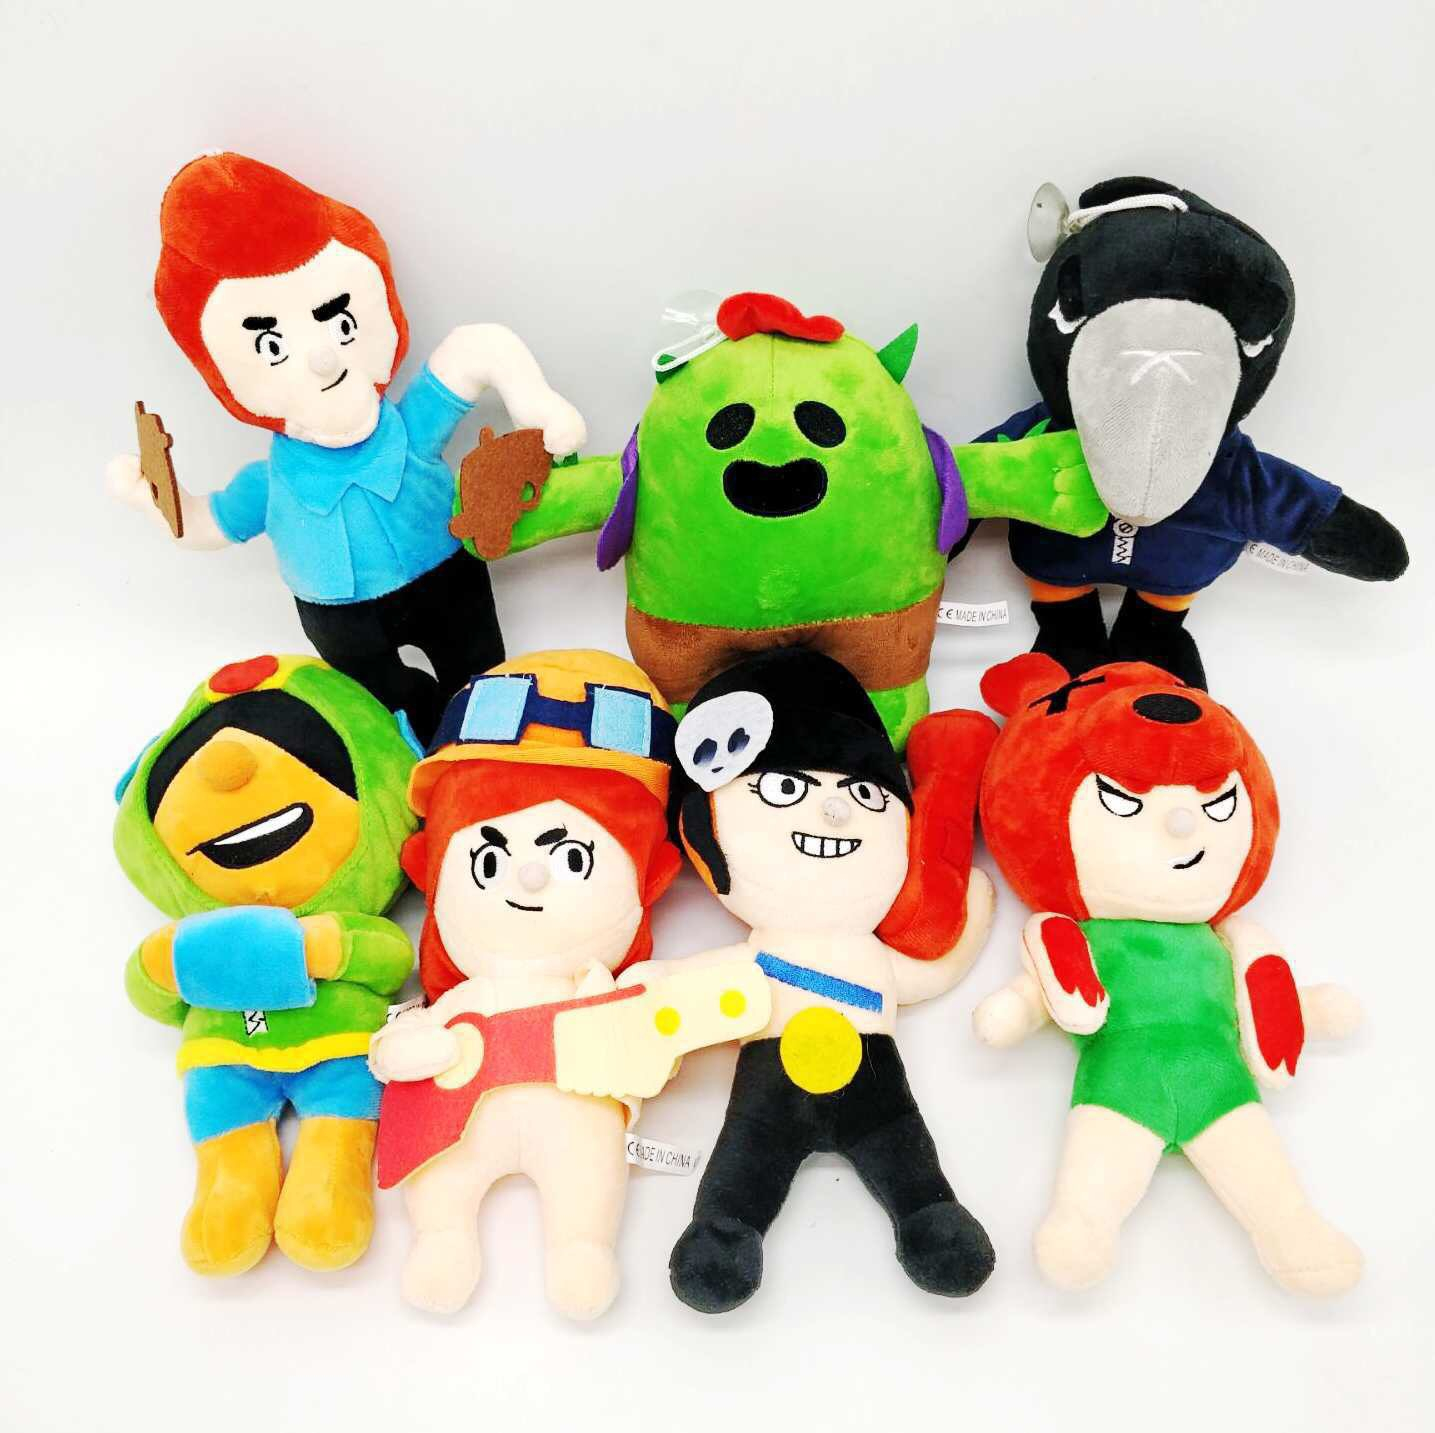 13 Styles Game Plush Toy 10-20cm Anime Game Spike Model Doll Plush Toy Cactus Soft Stuffed Toys For Children Kids Christmas Gift